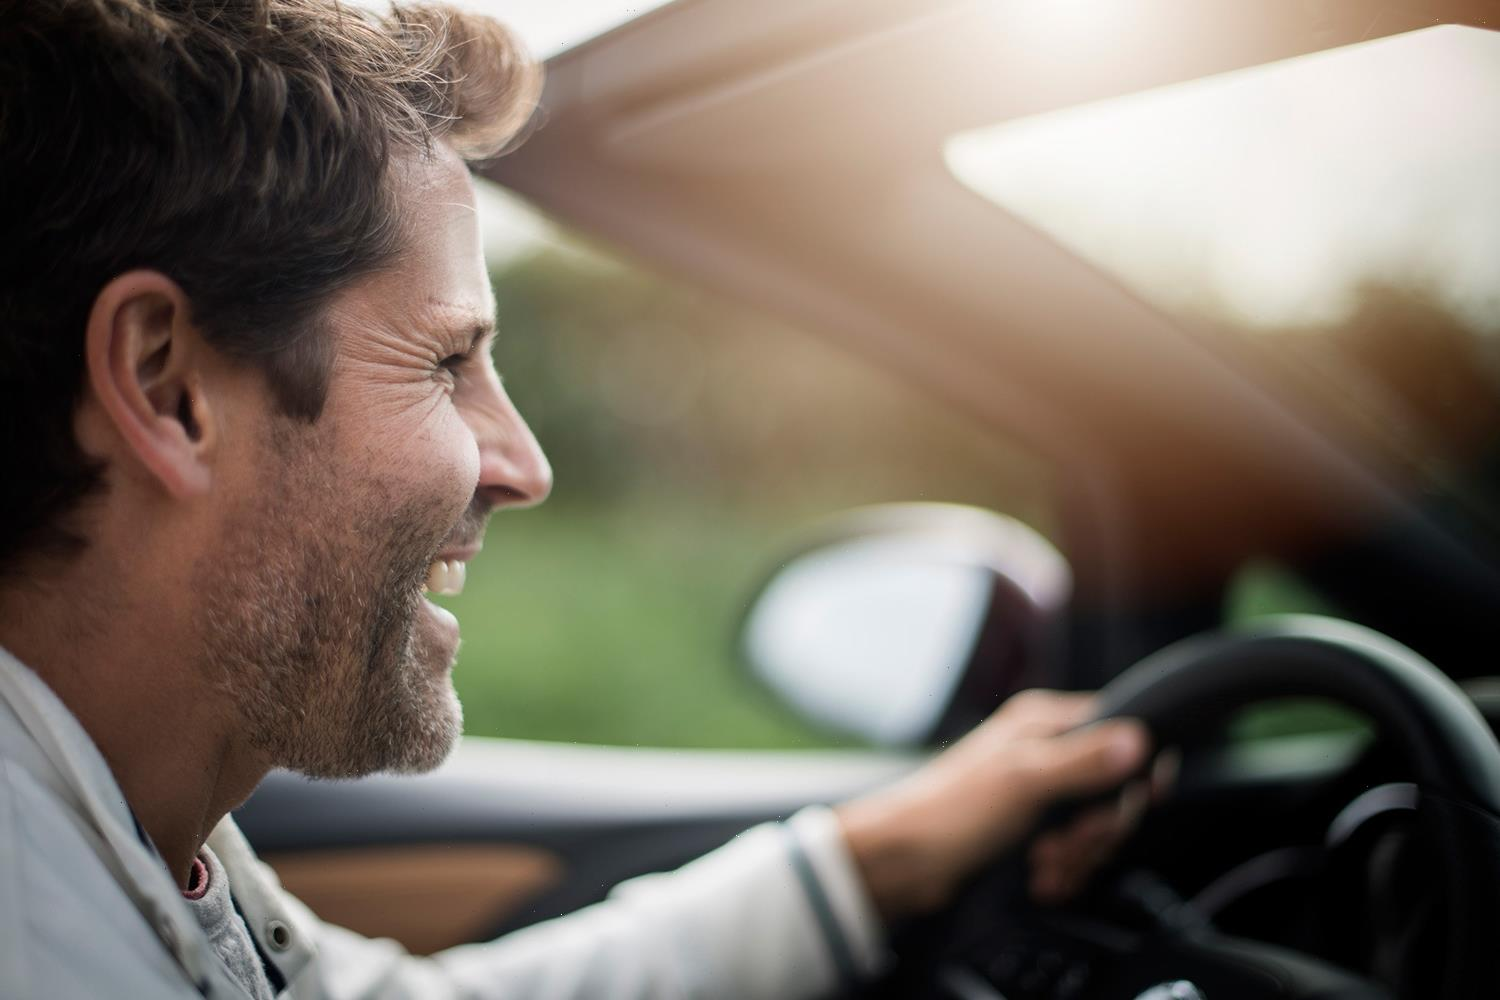 Americans have newfound love for their vehicles since Covid hit as 40% say they've had 'eureka' moments while driving